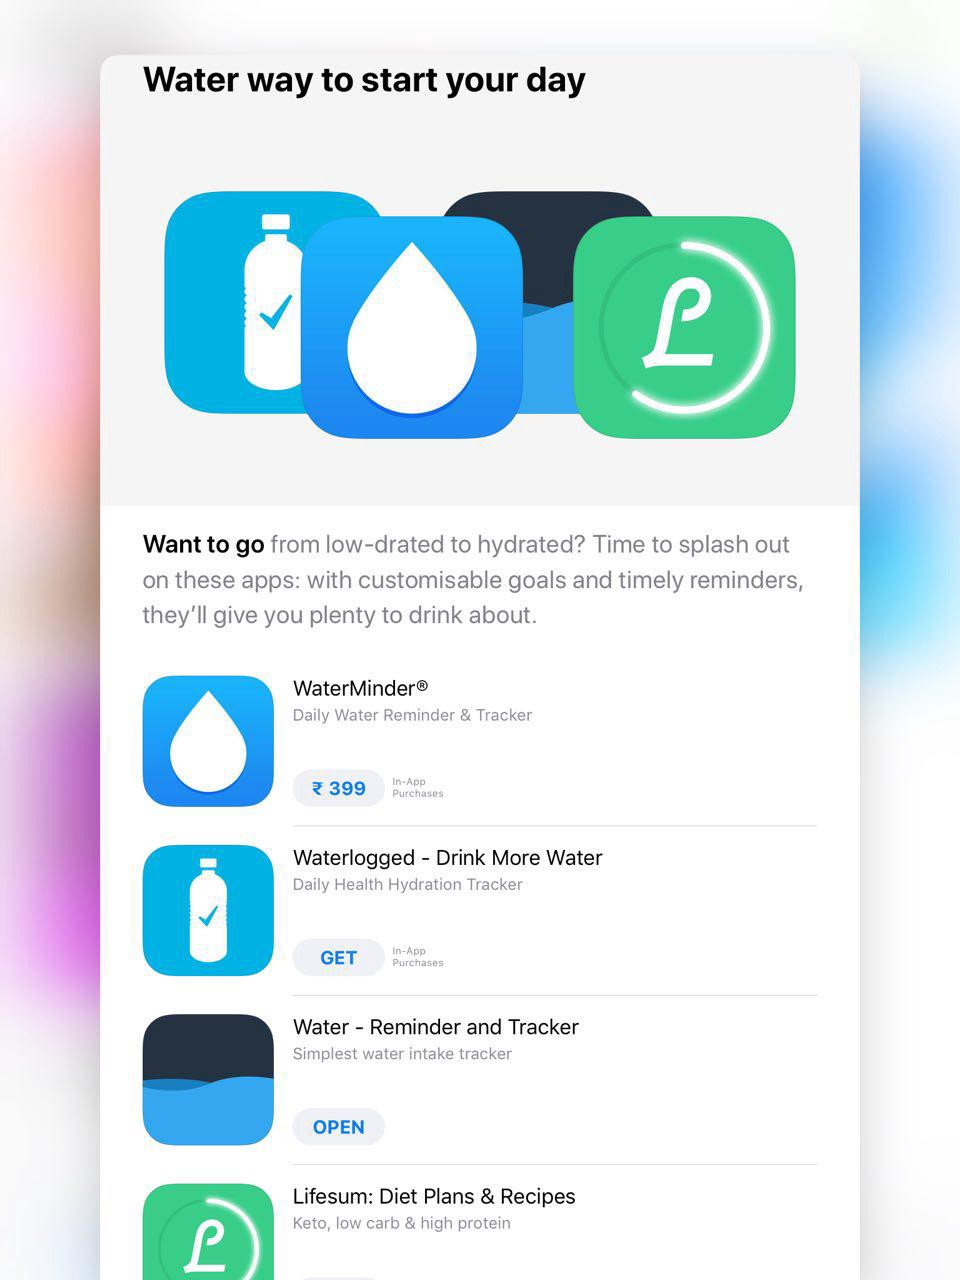 We built an app in 12 days and it's up and running in the AppStore